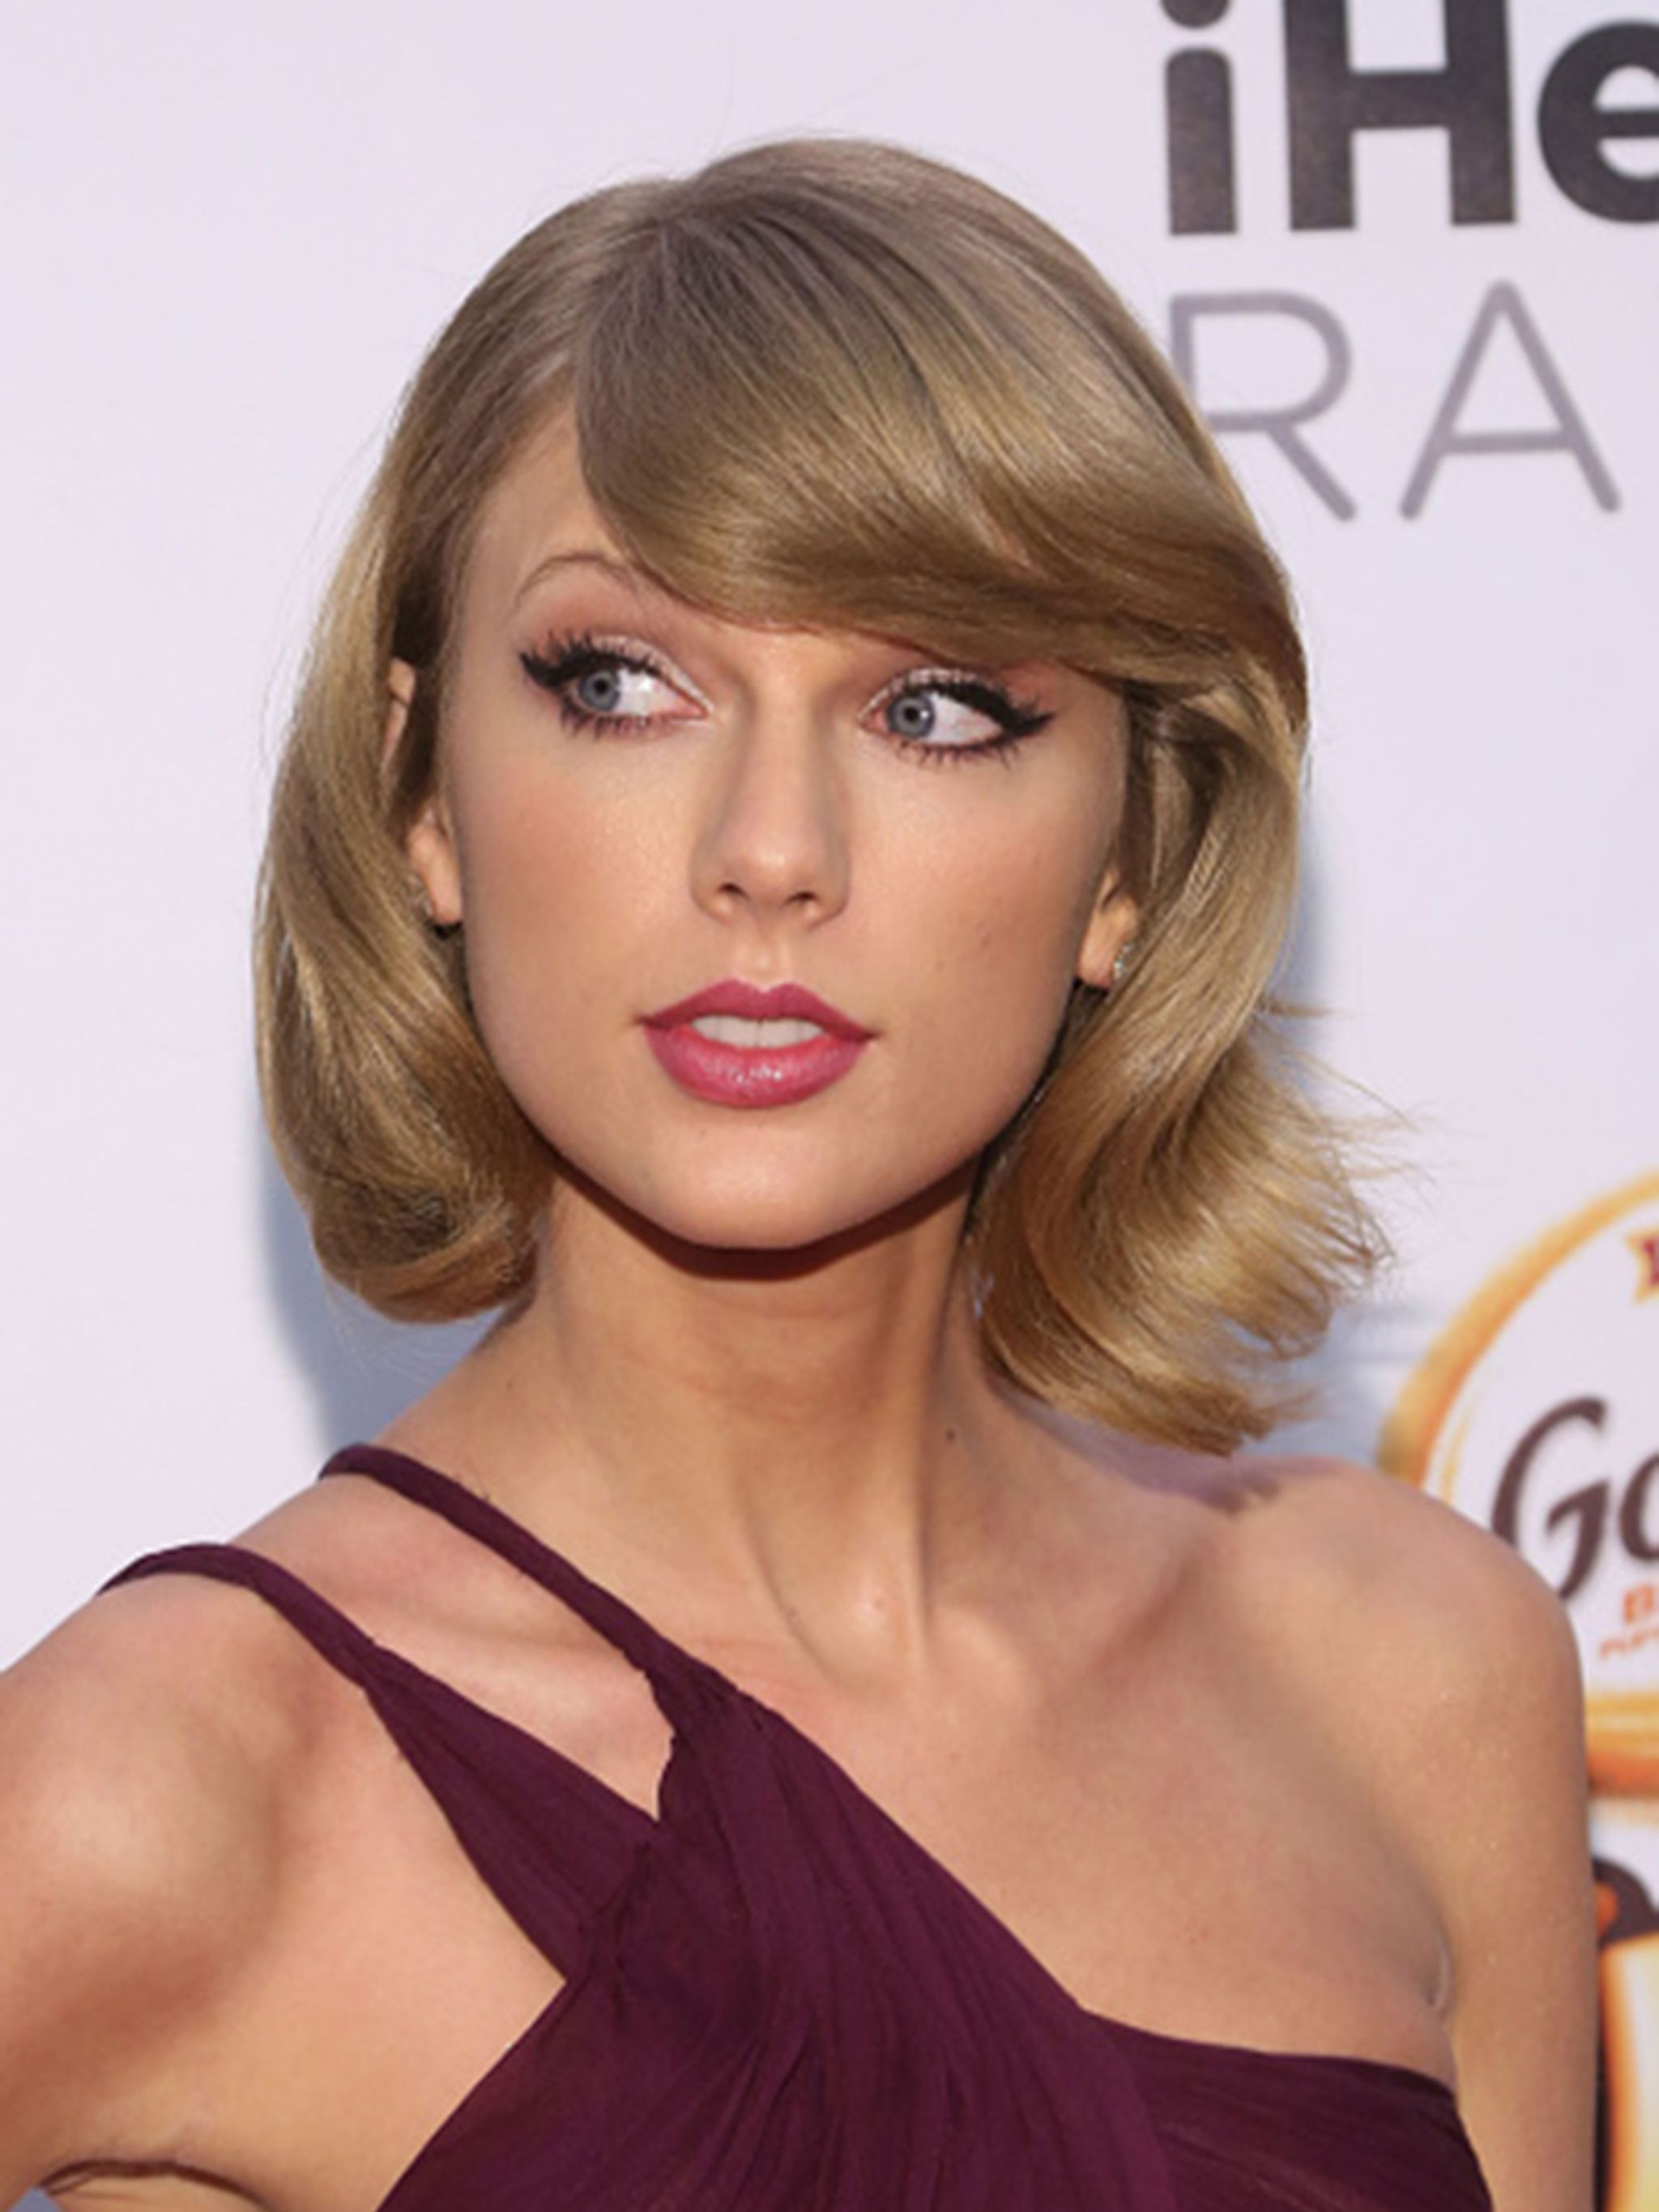 Taylor Swift S Hair Journey From Wavy Lob To Classic Bob